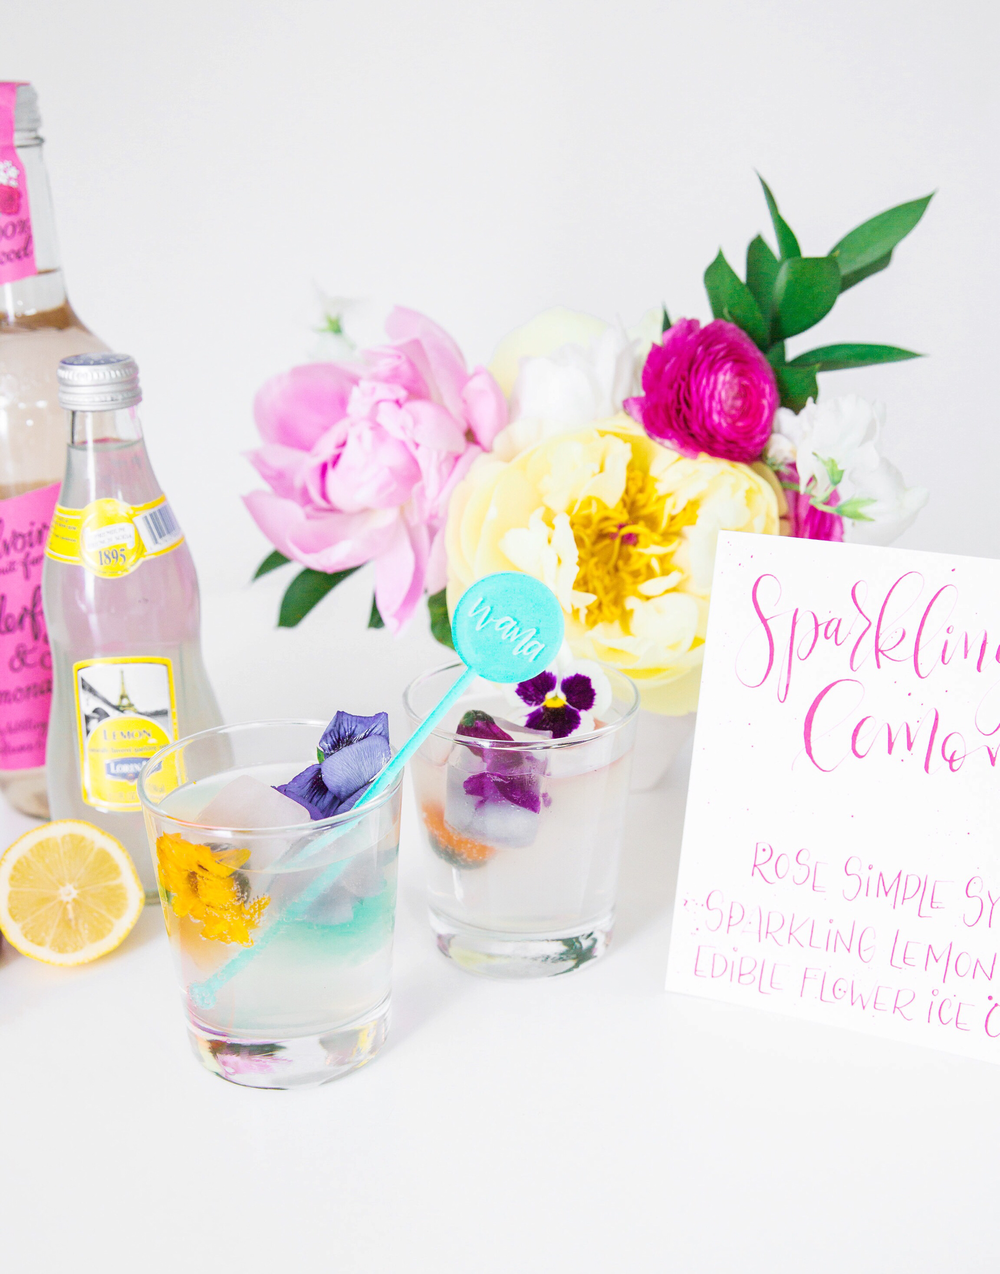 cake-and-confetti-mocktail-recipe